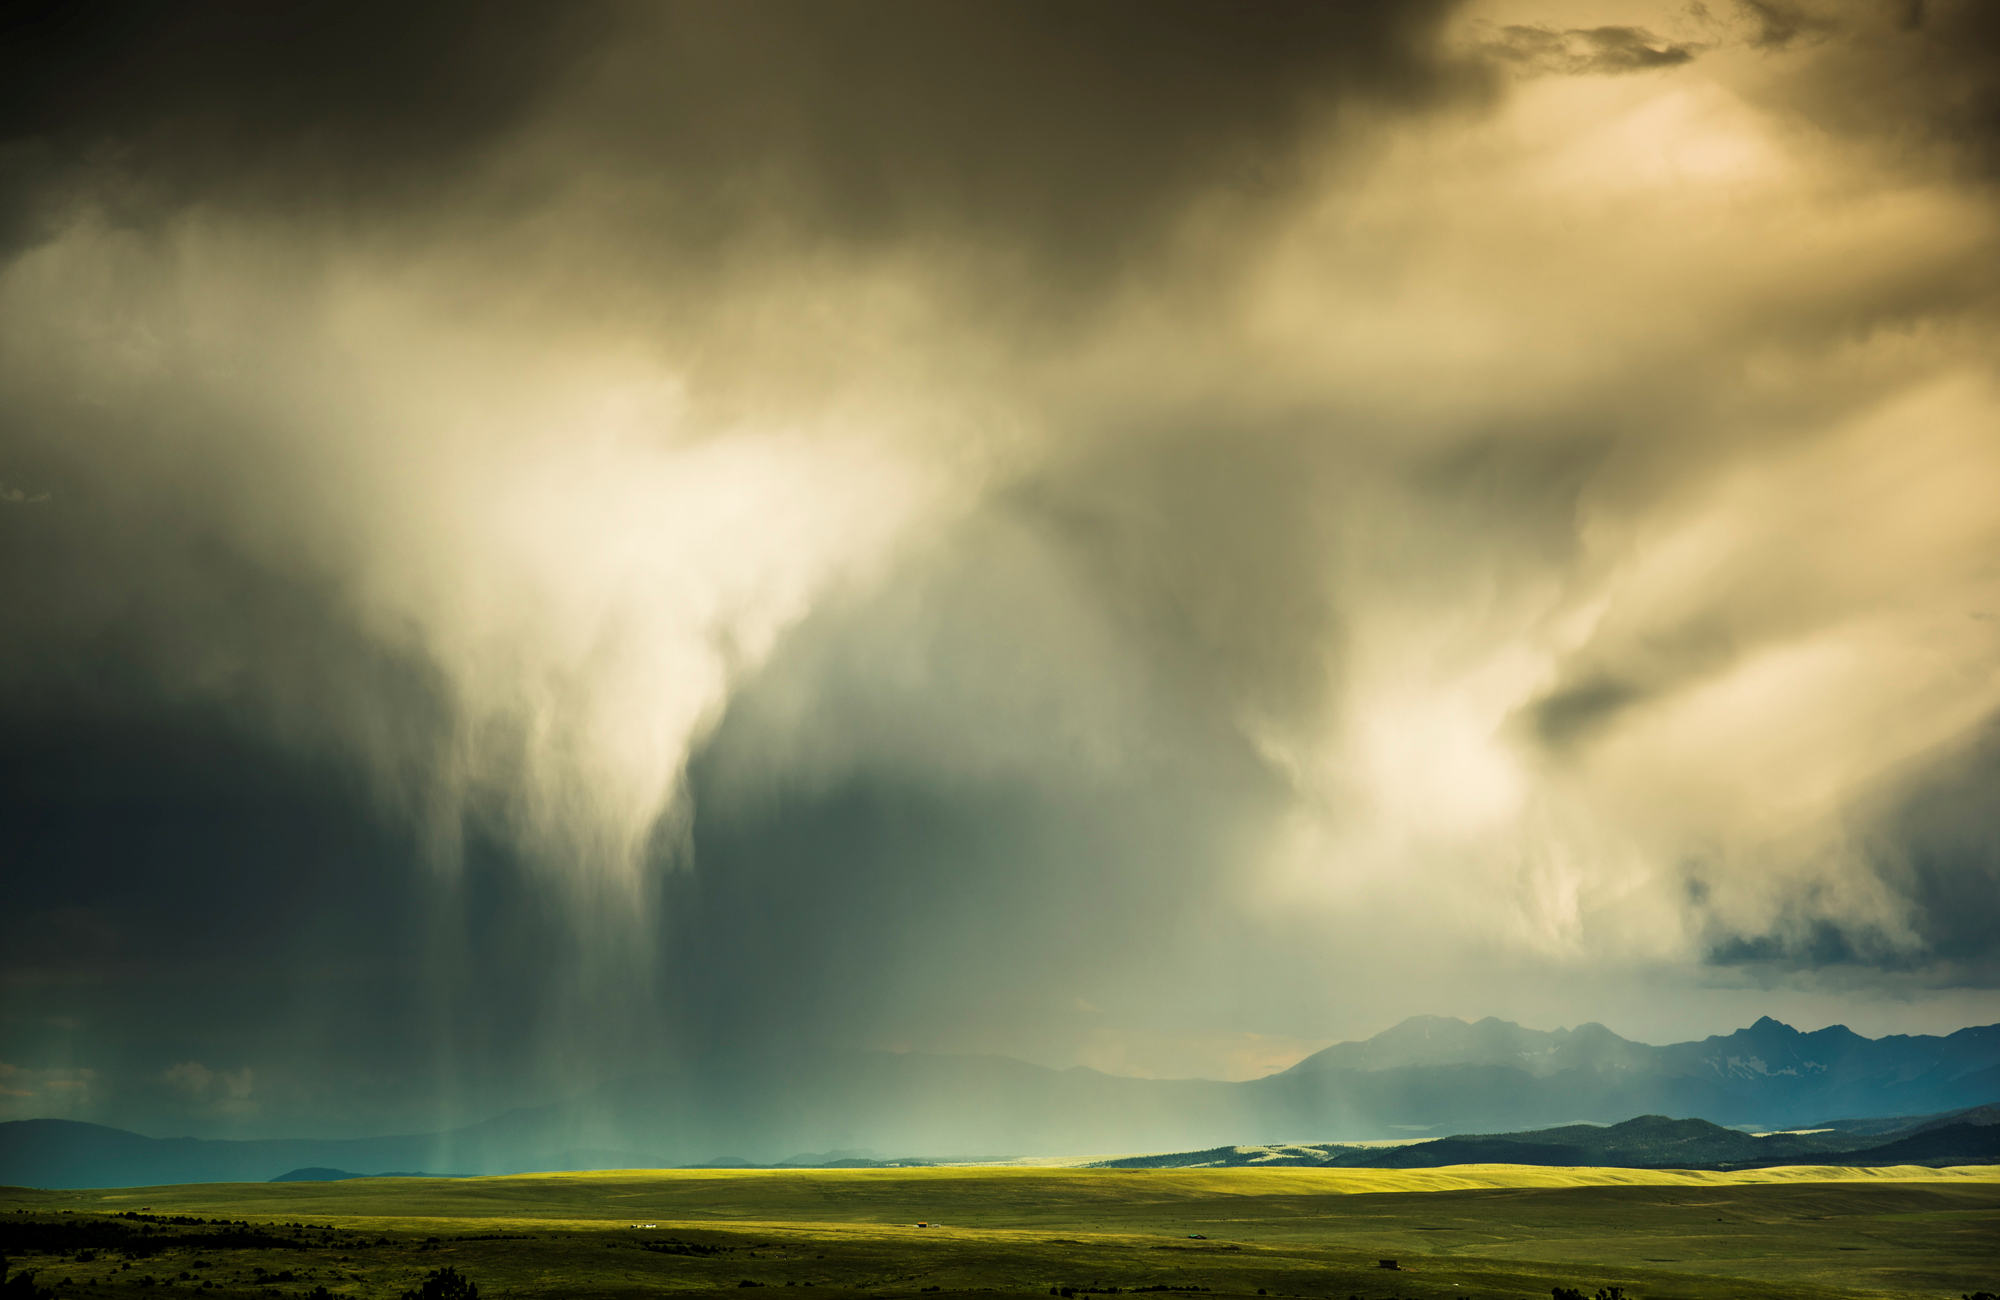 Rain Clouds Over Valley